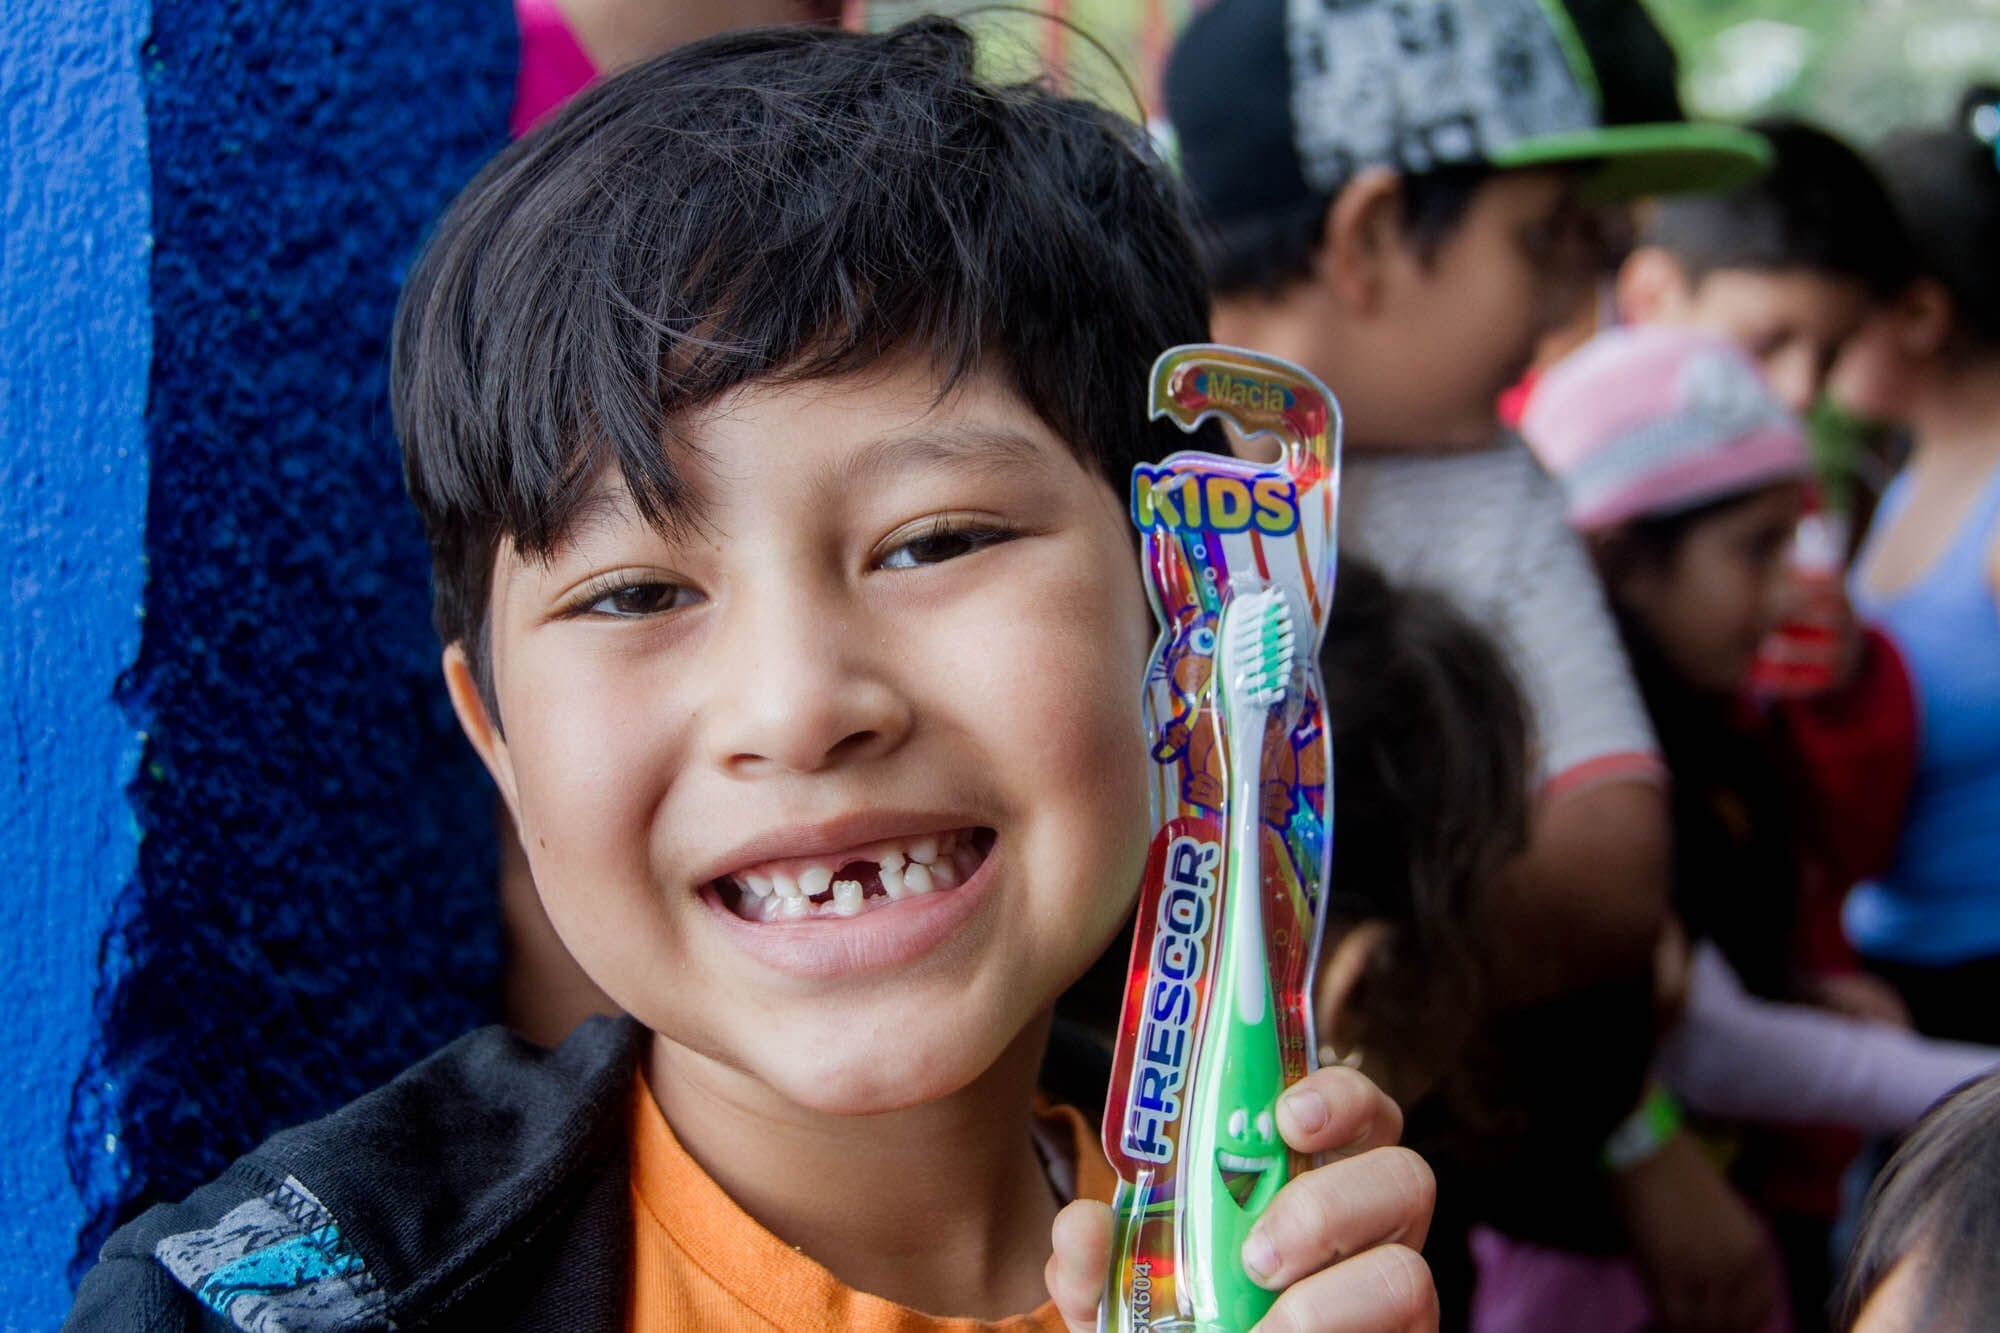 Costa Rica Dental Clinic Provides Free Dental Care to